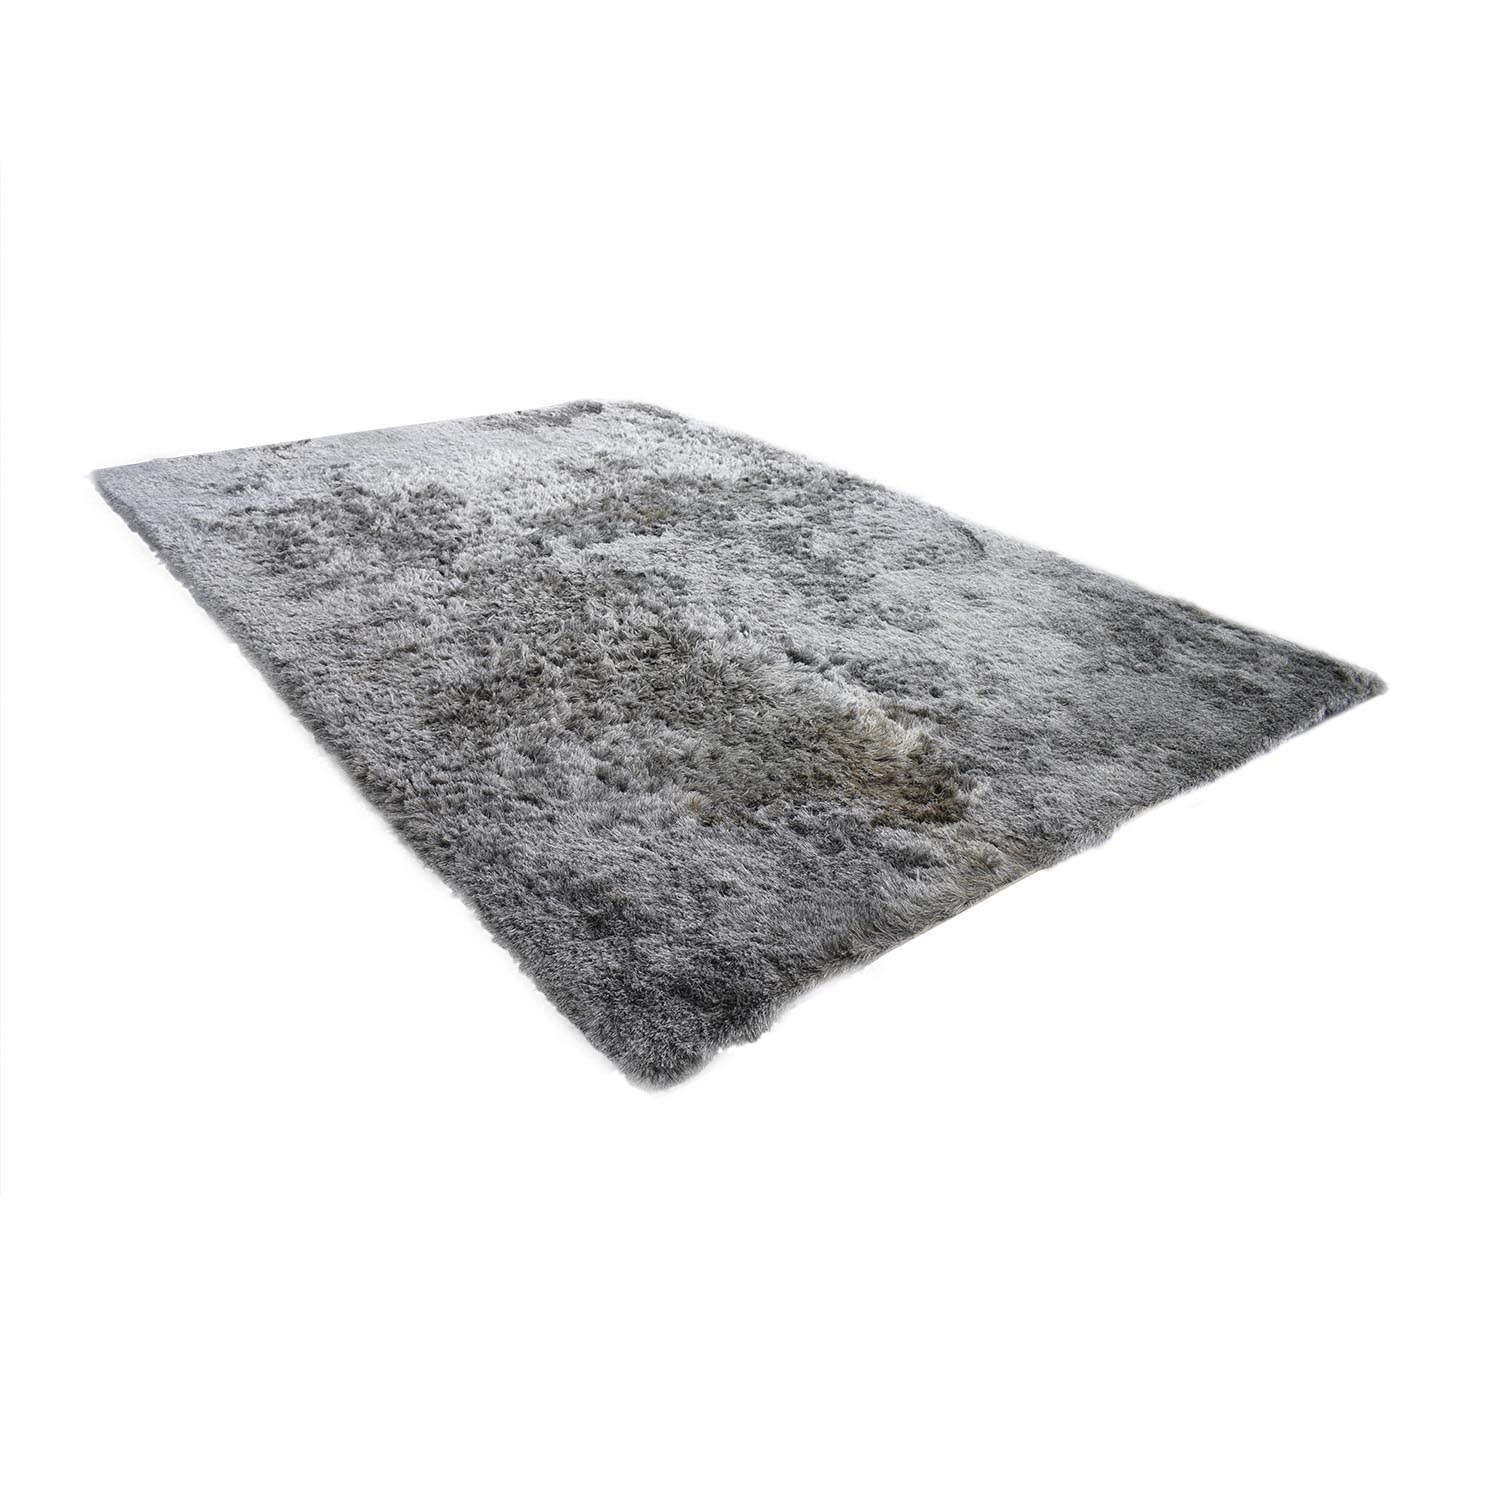 Safavieh Safavieh Silken Glam Paris Shag Silver Rug for sale